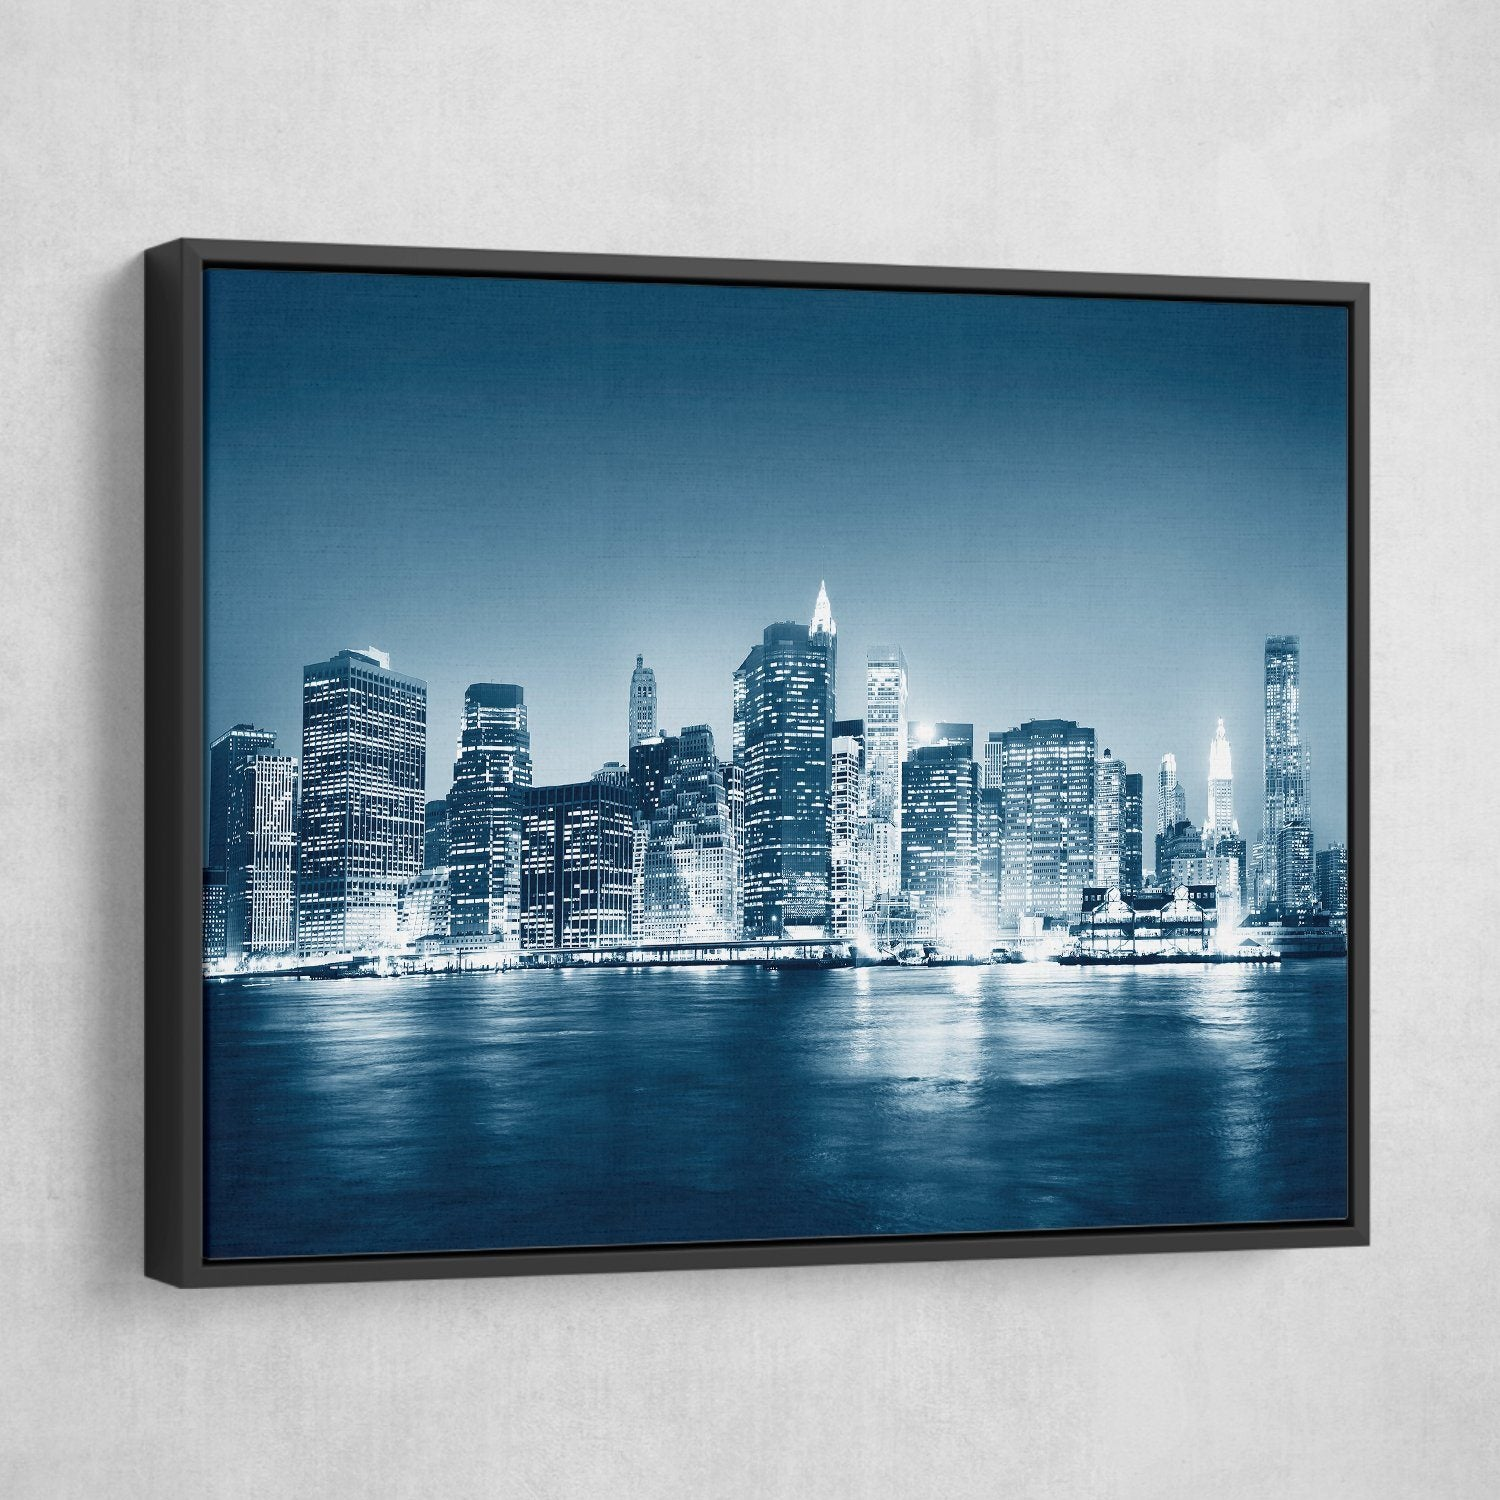 Night in New York wall art black frame